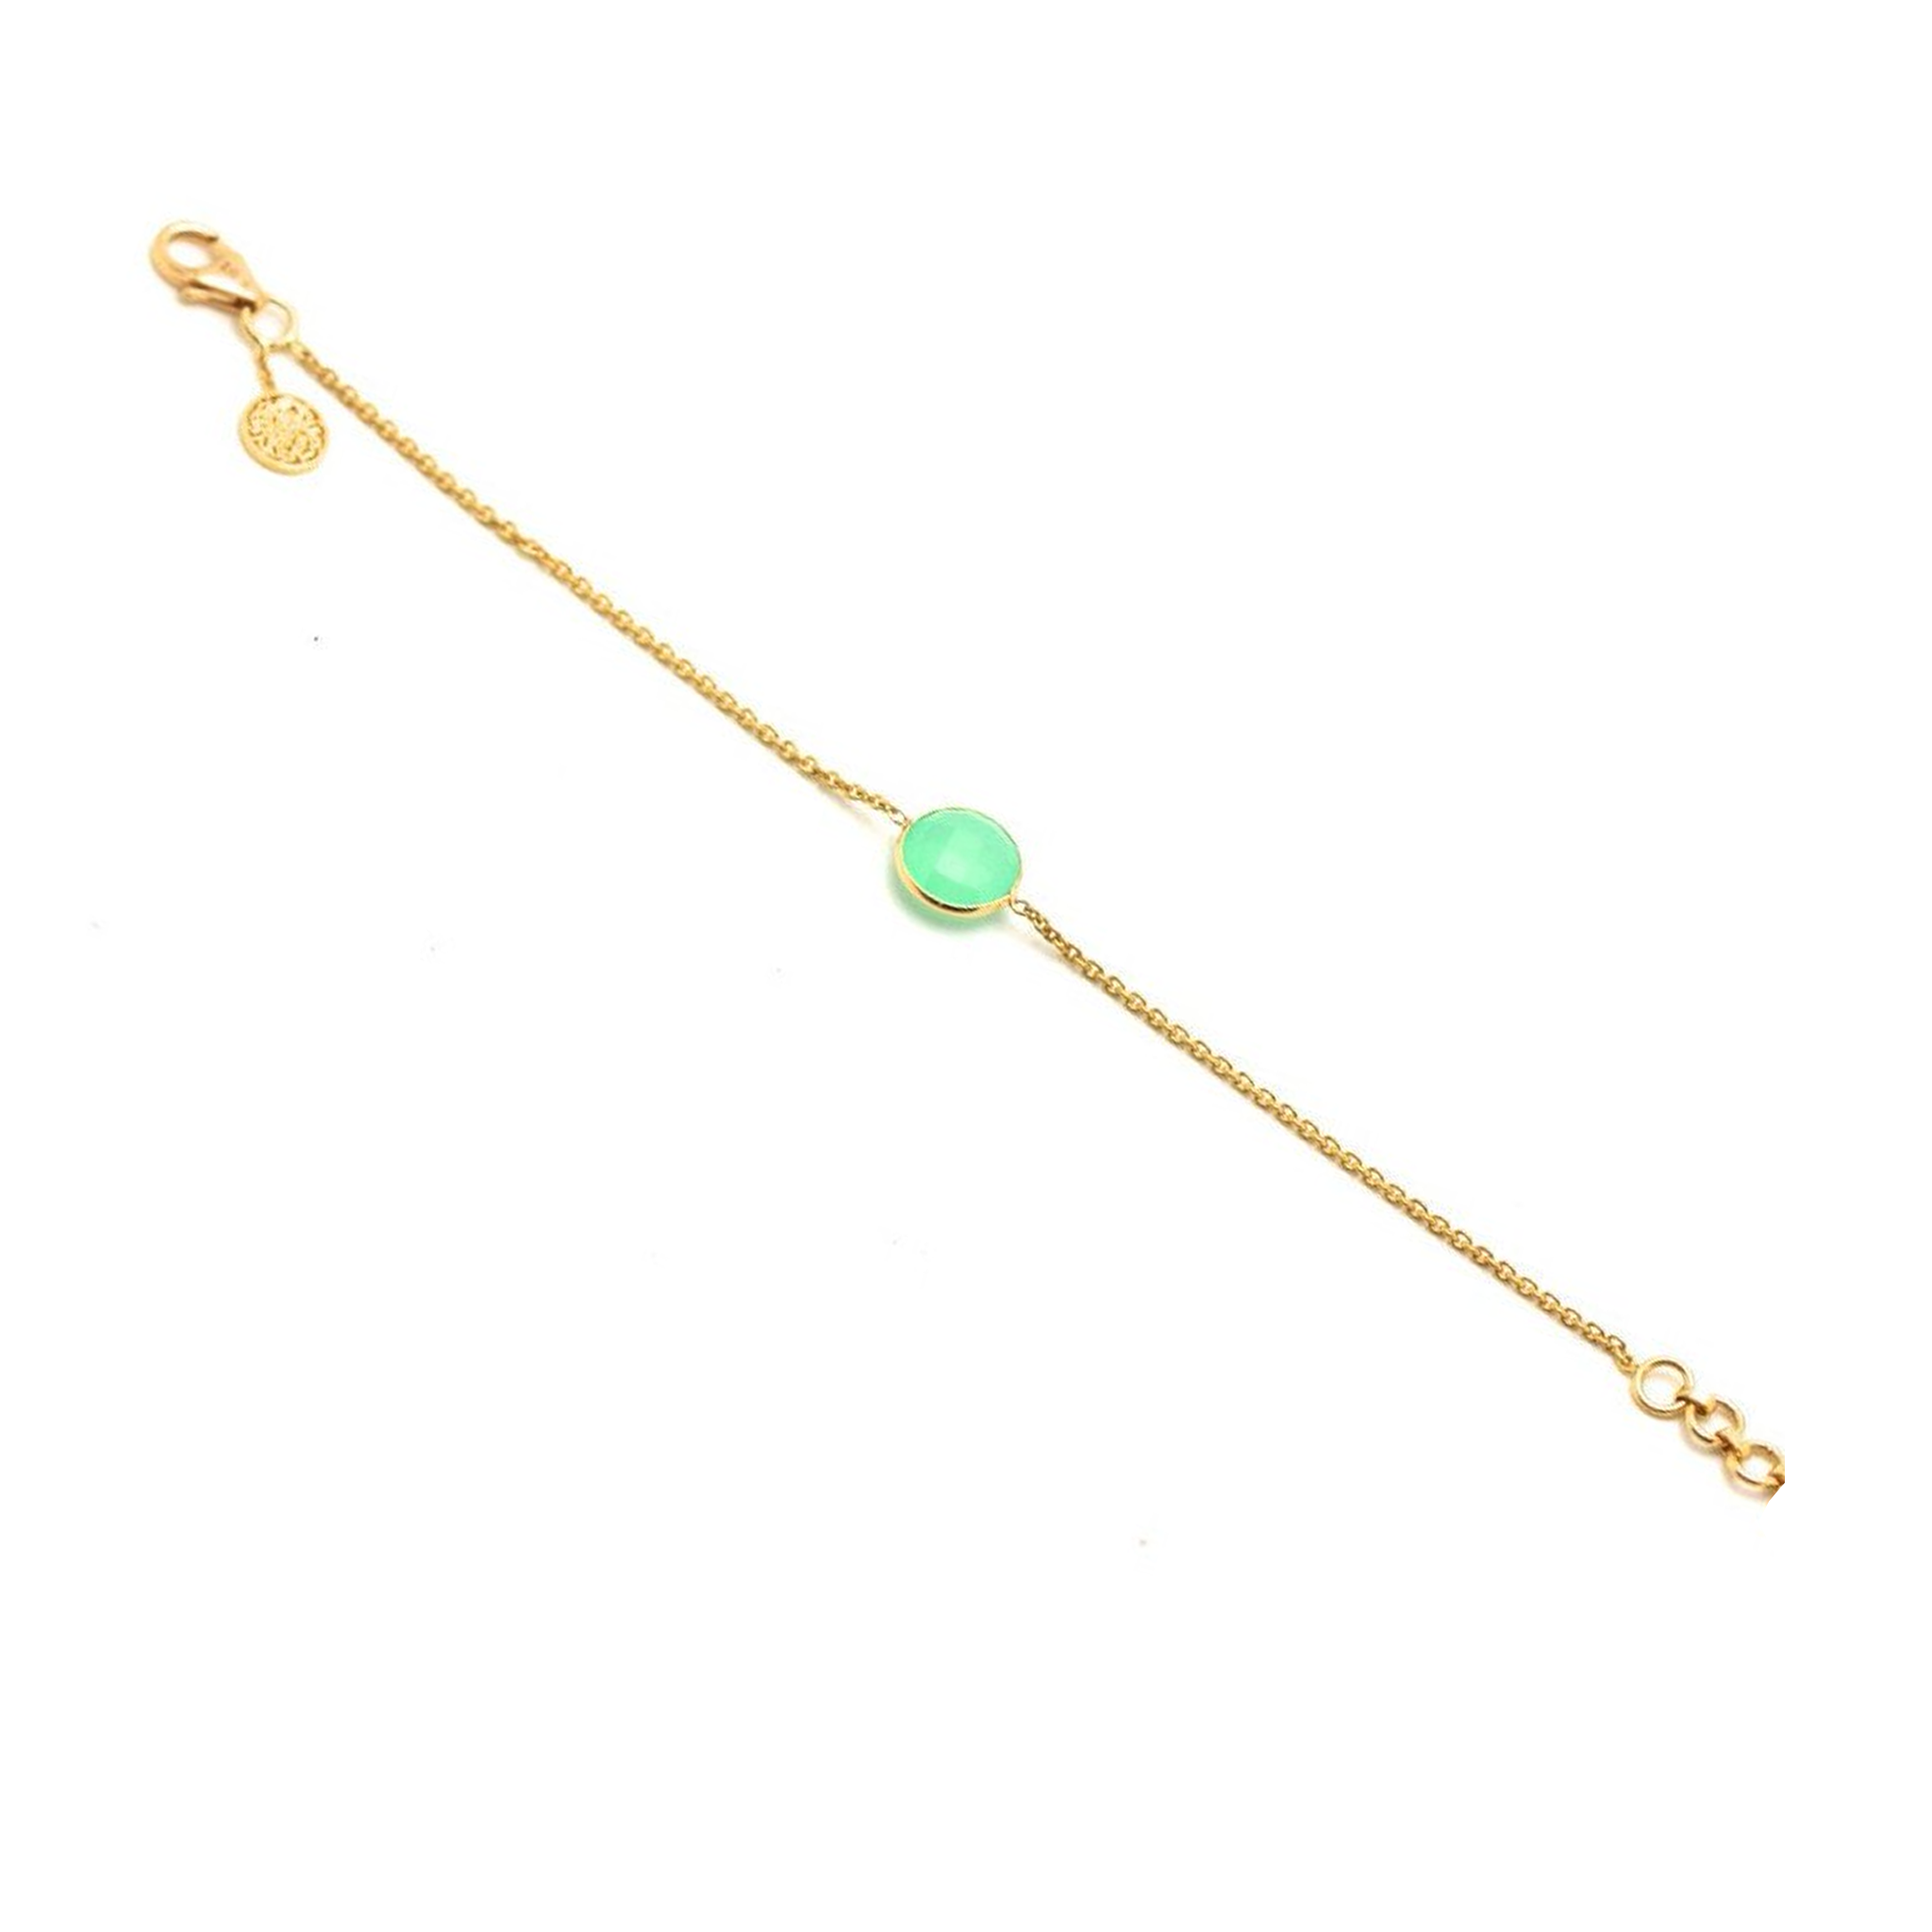 Crysophrase Single Stone Bracelet in 18k Yellow Gold